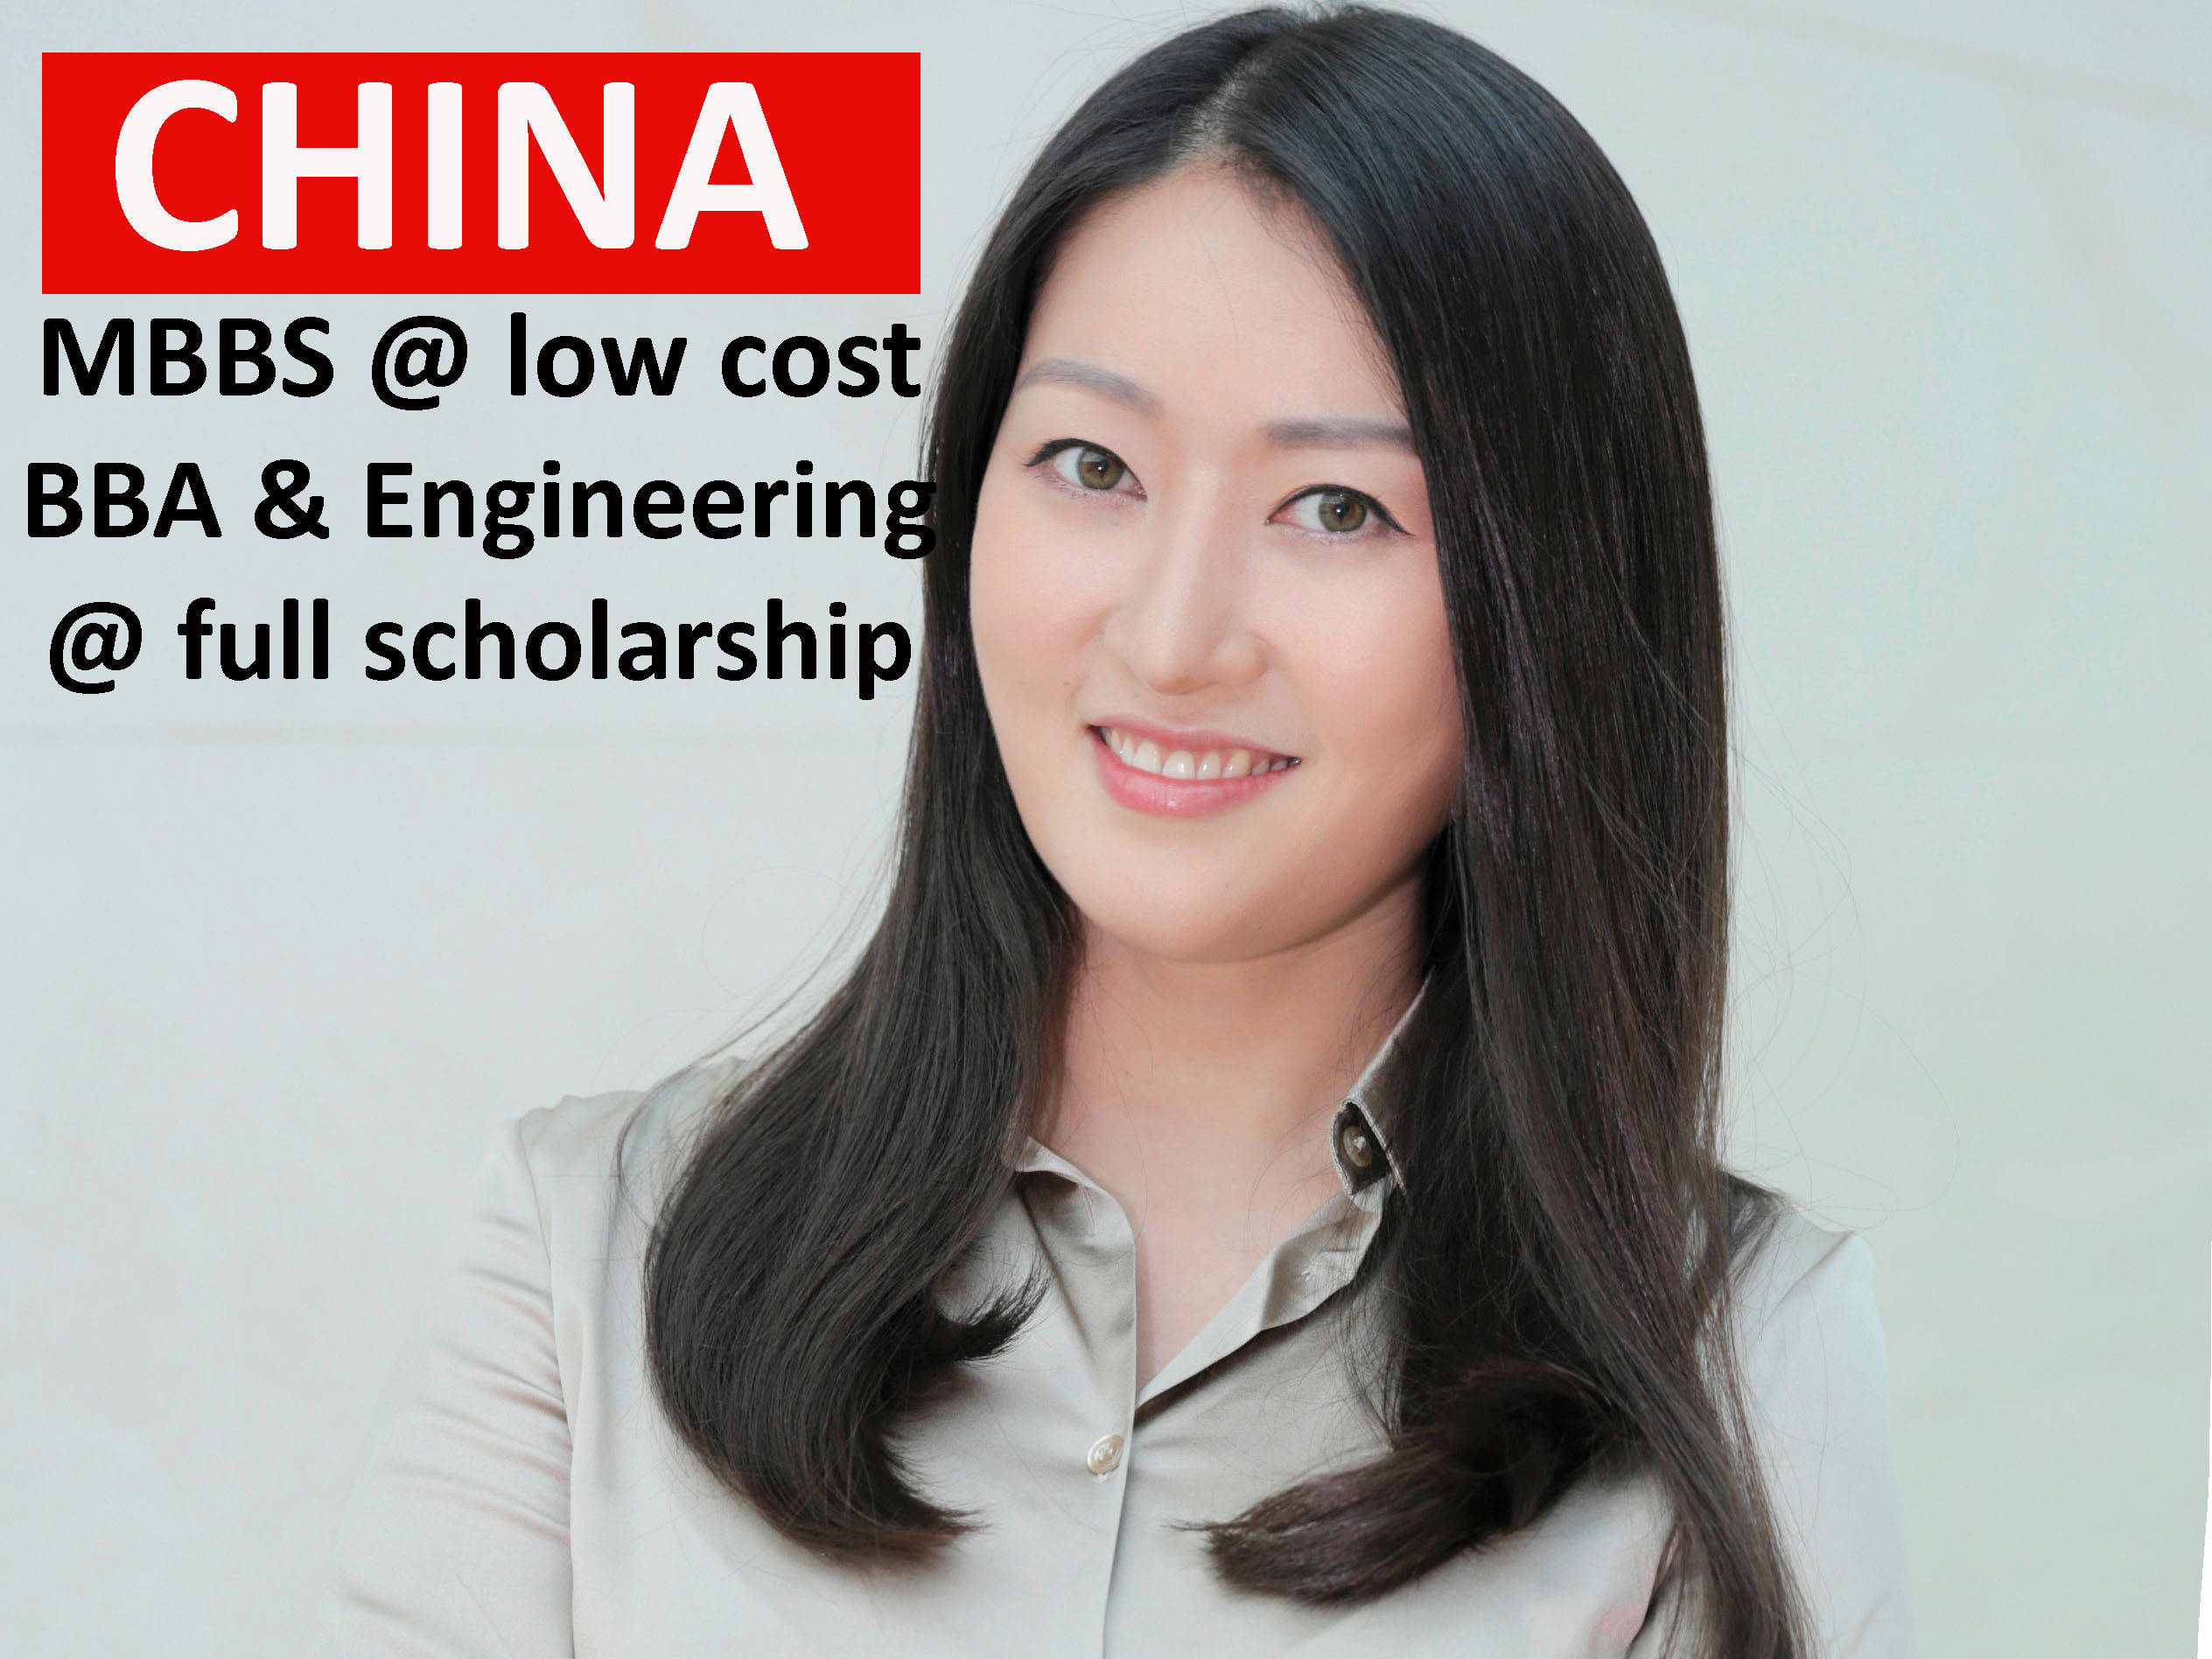 this-woman-has-a-brilliant-plan-to-help-western-companies-sell-to-china-by-making-the-gray-market-legit.jpg